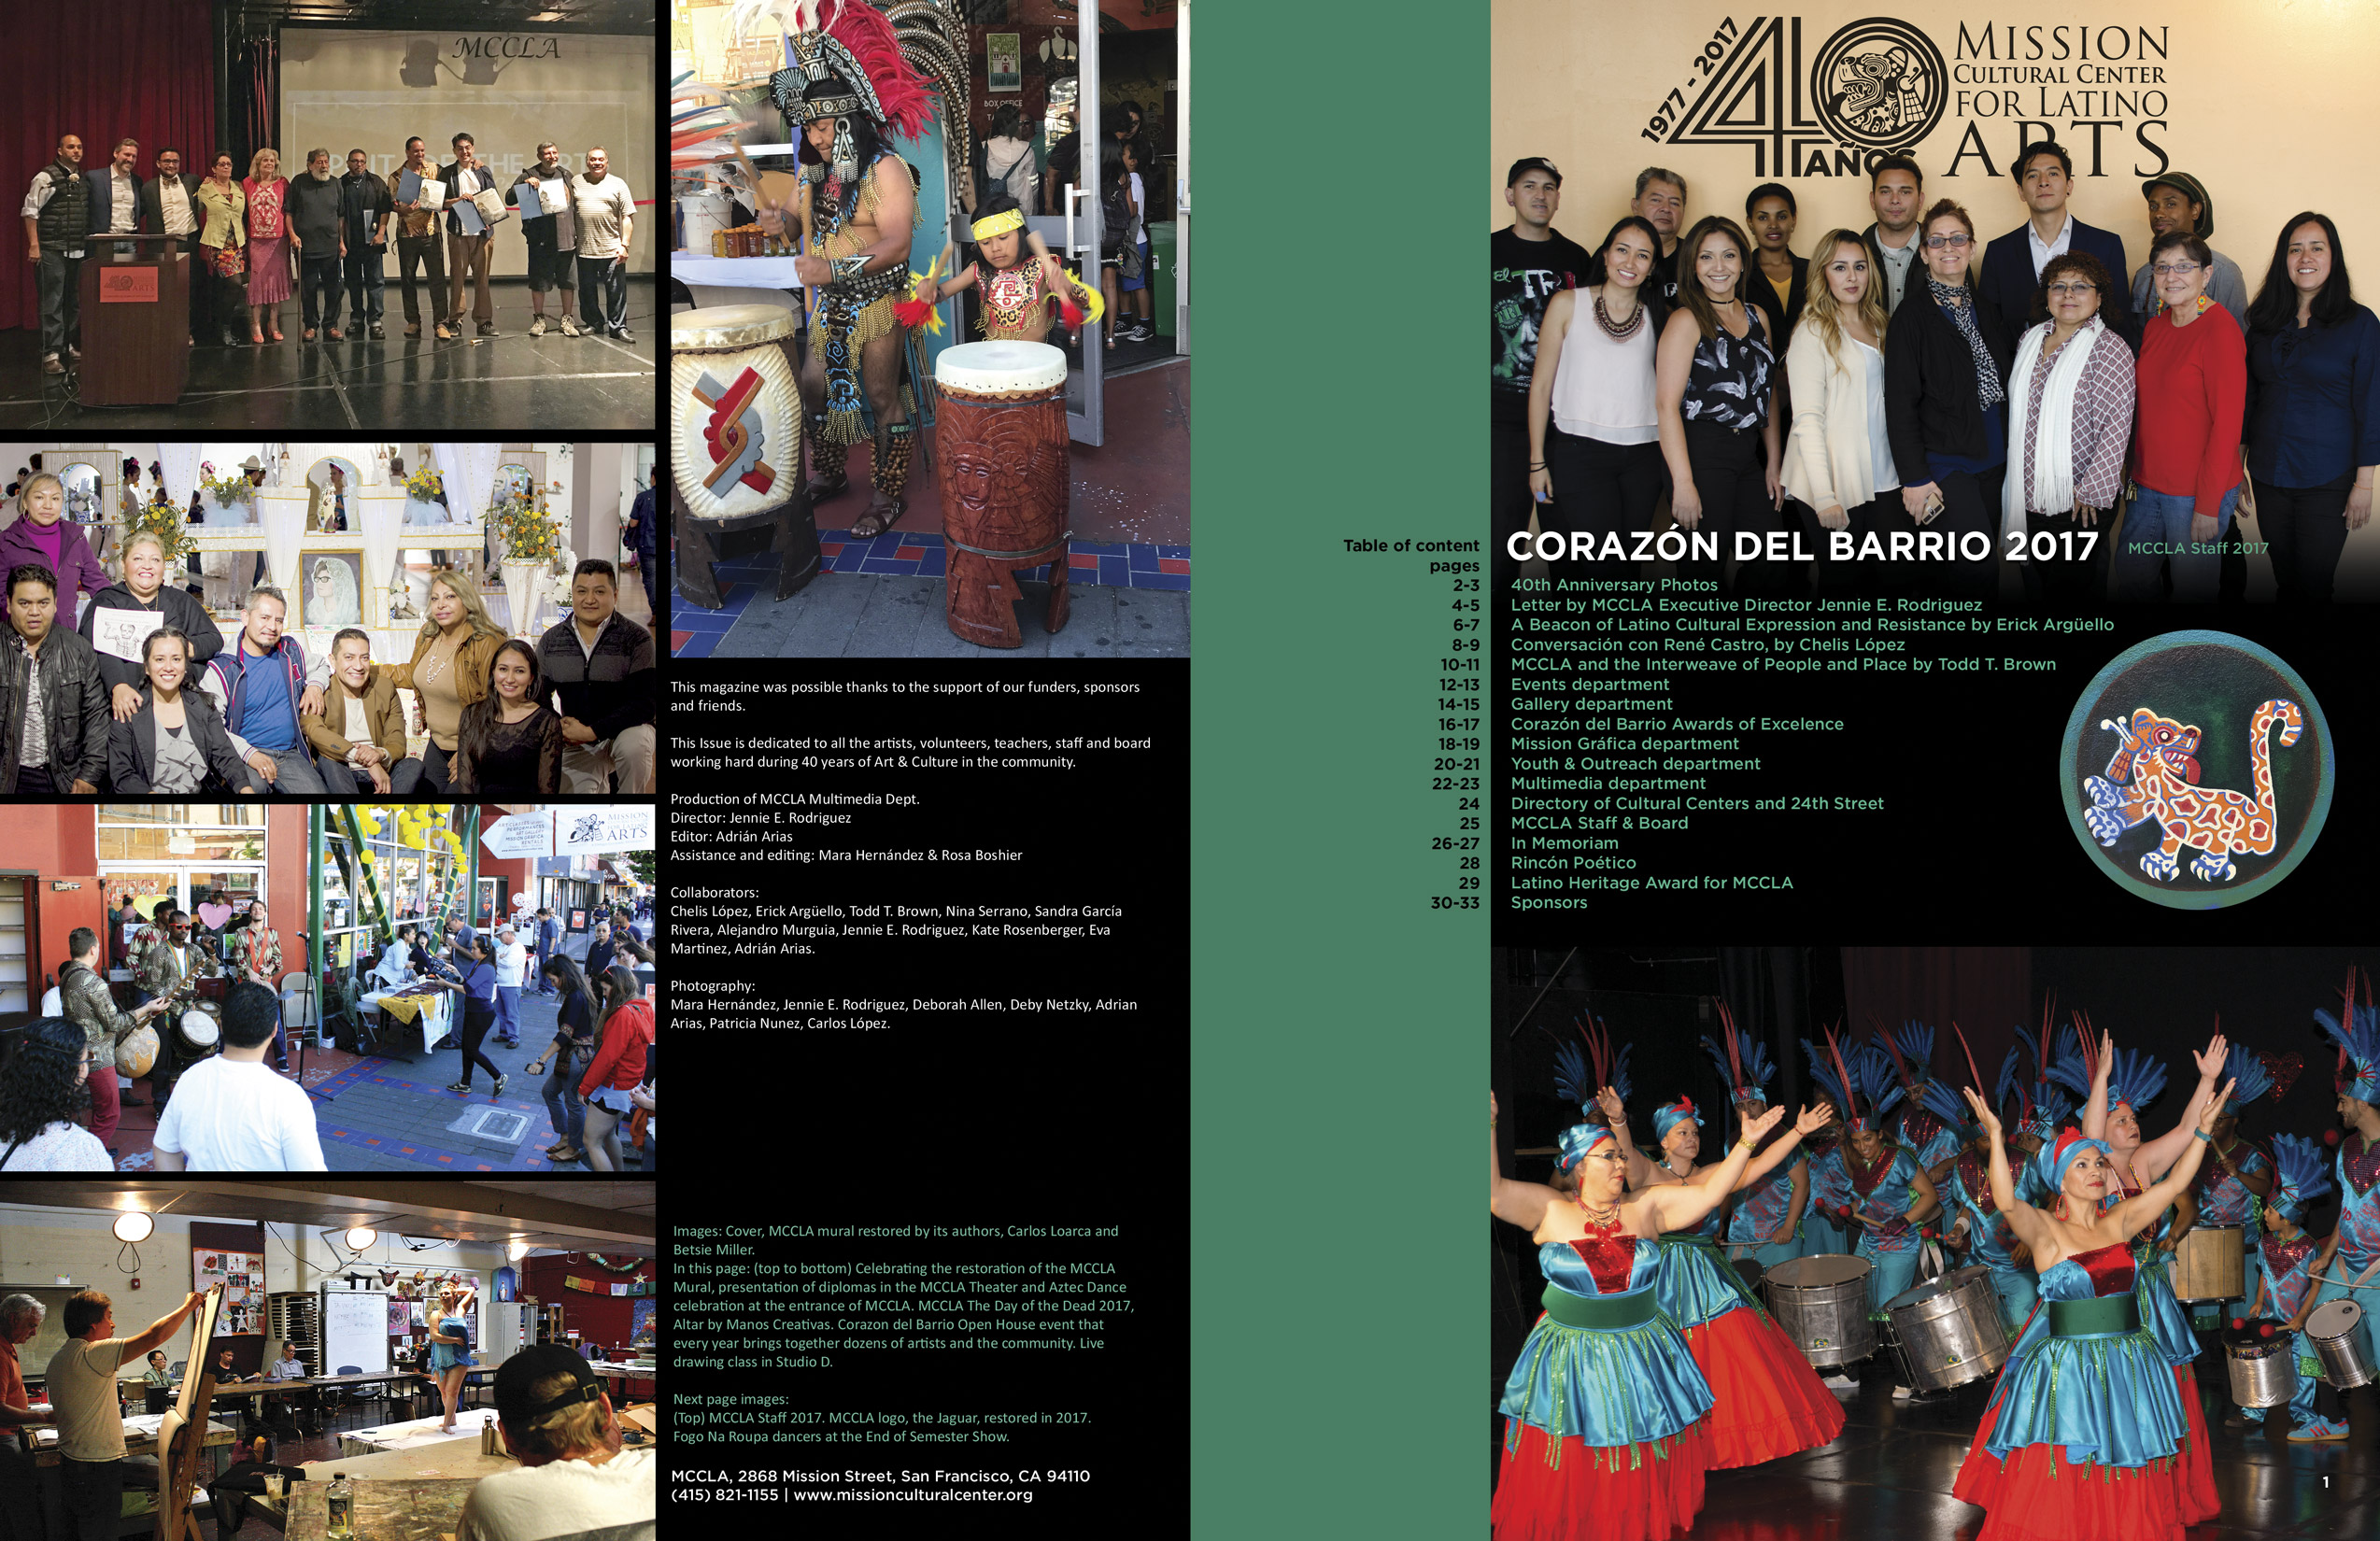 MCCLA Magazine 40th Anniversary Inside Cover & Page 1